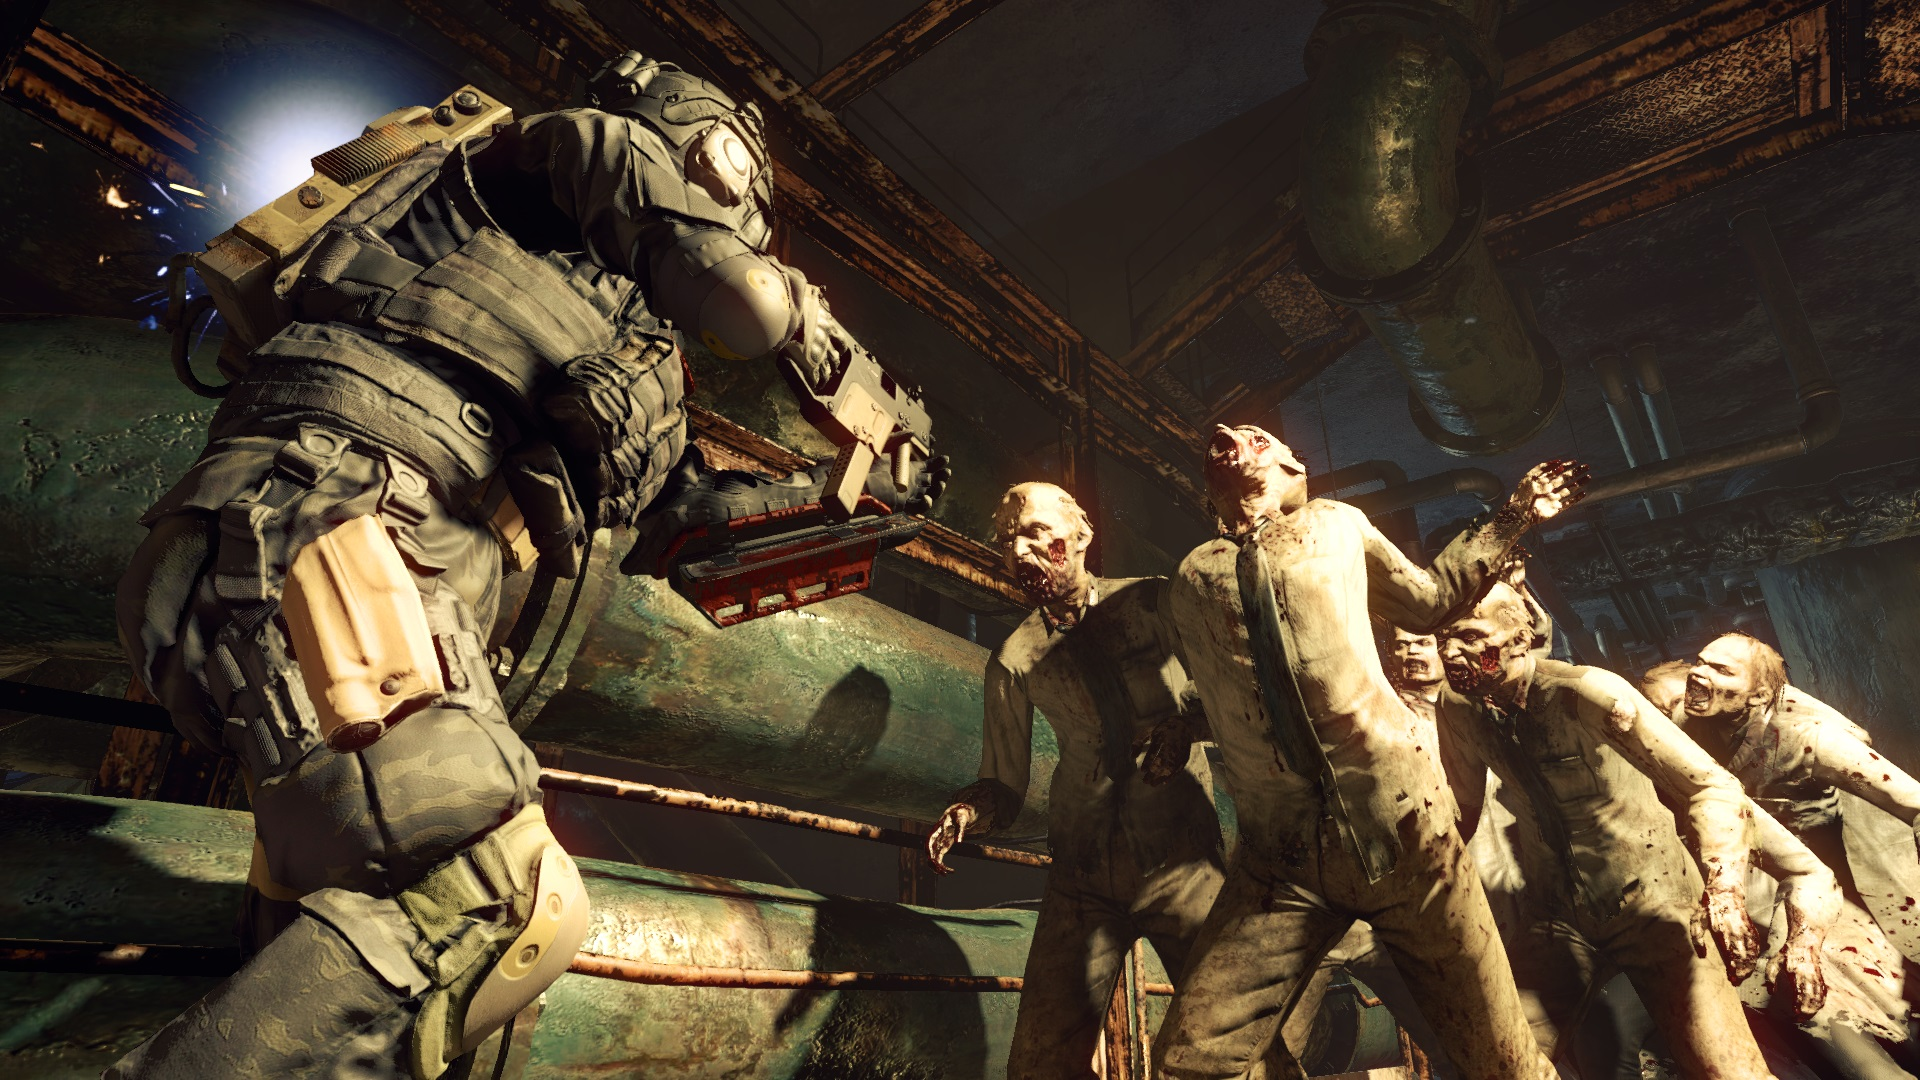 TGS 2015: New details for Umbrella Corps revealed, plus a live action trailer